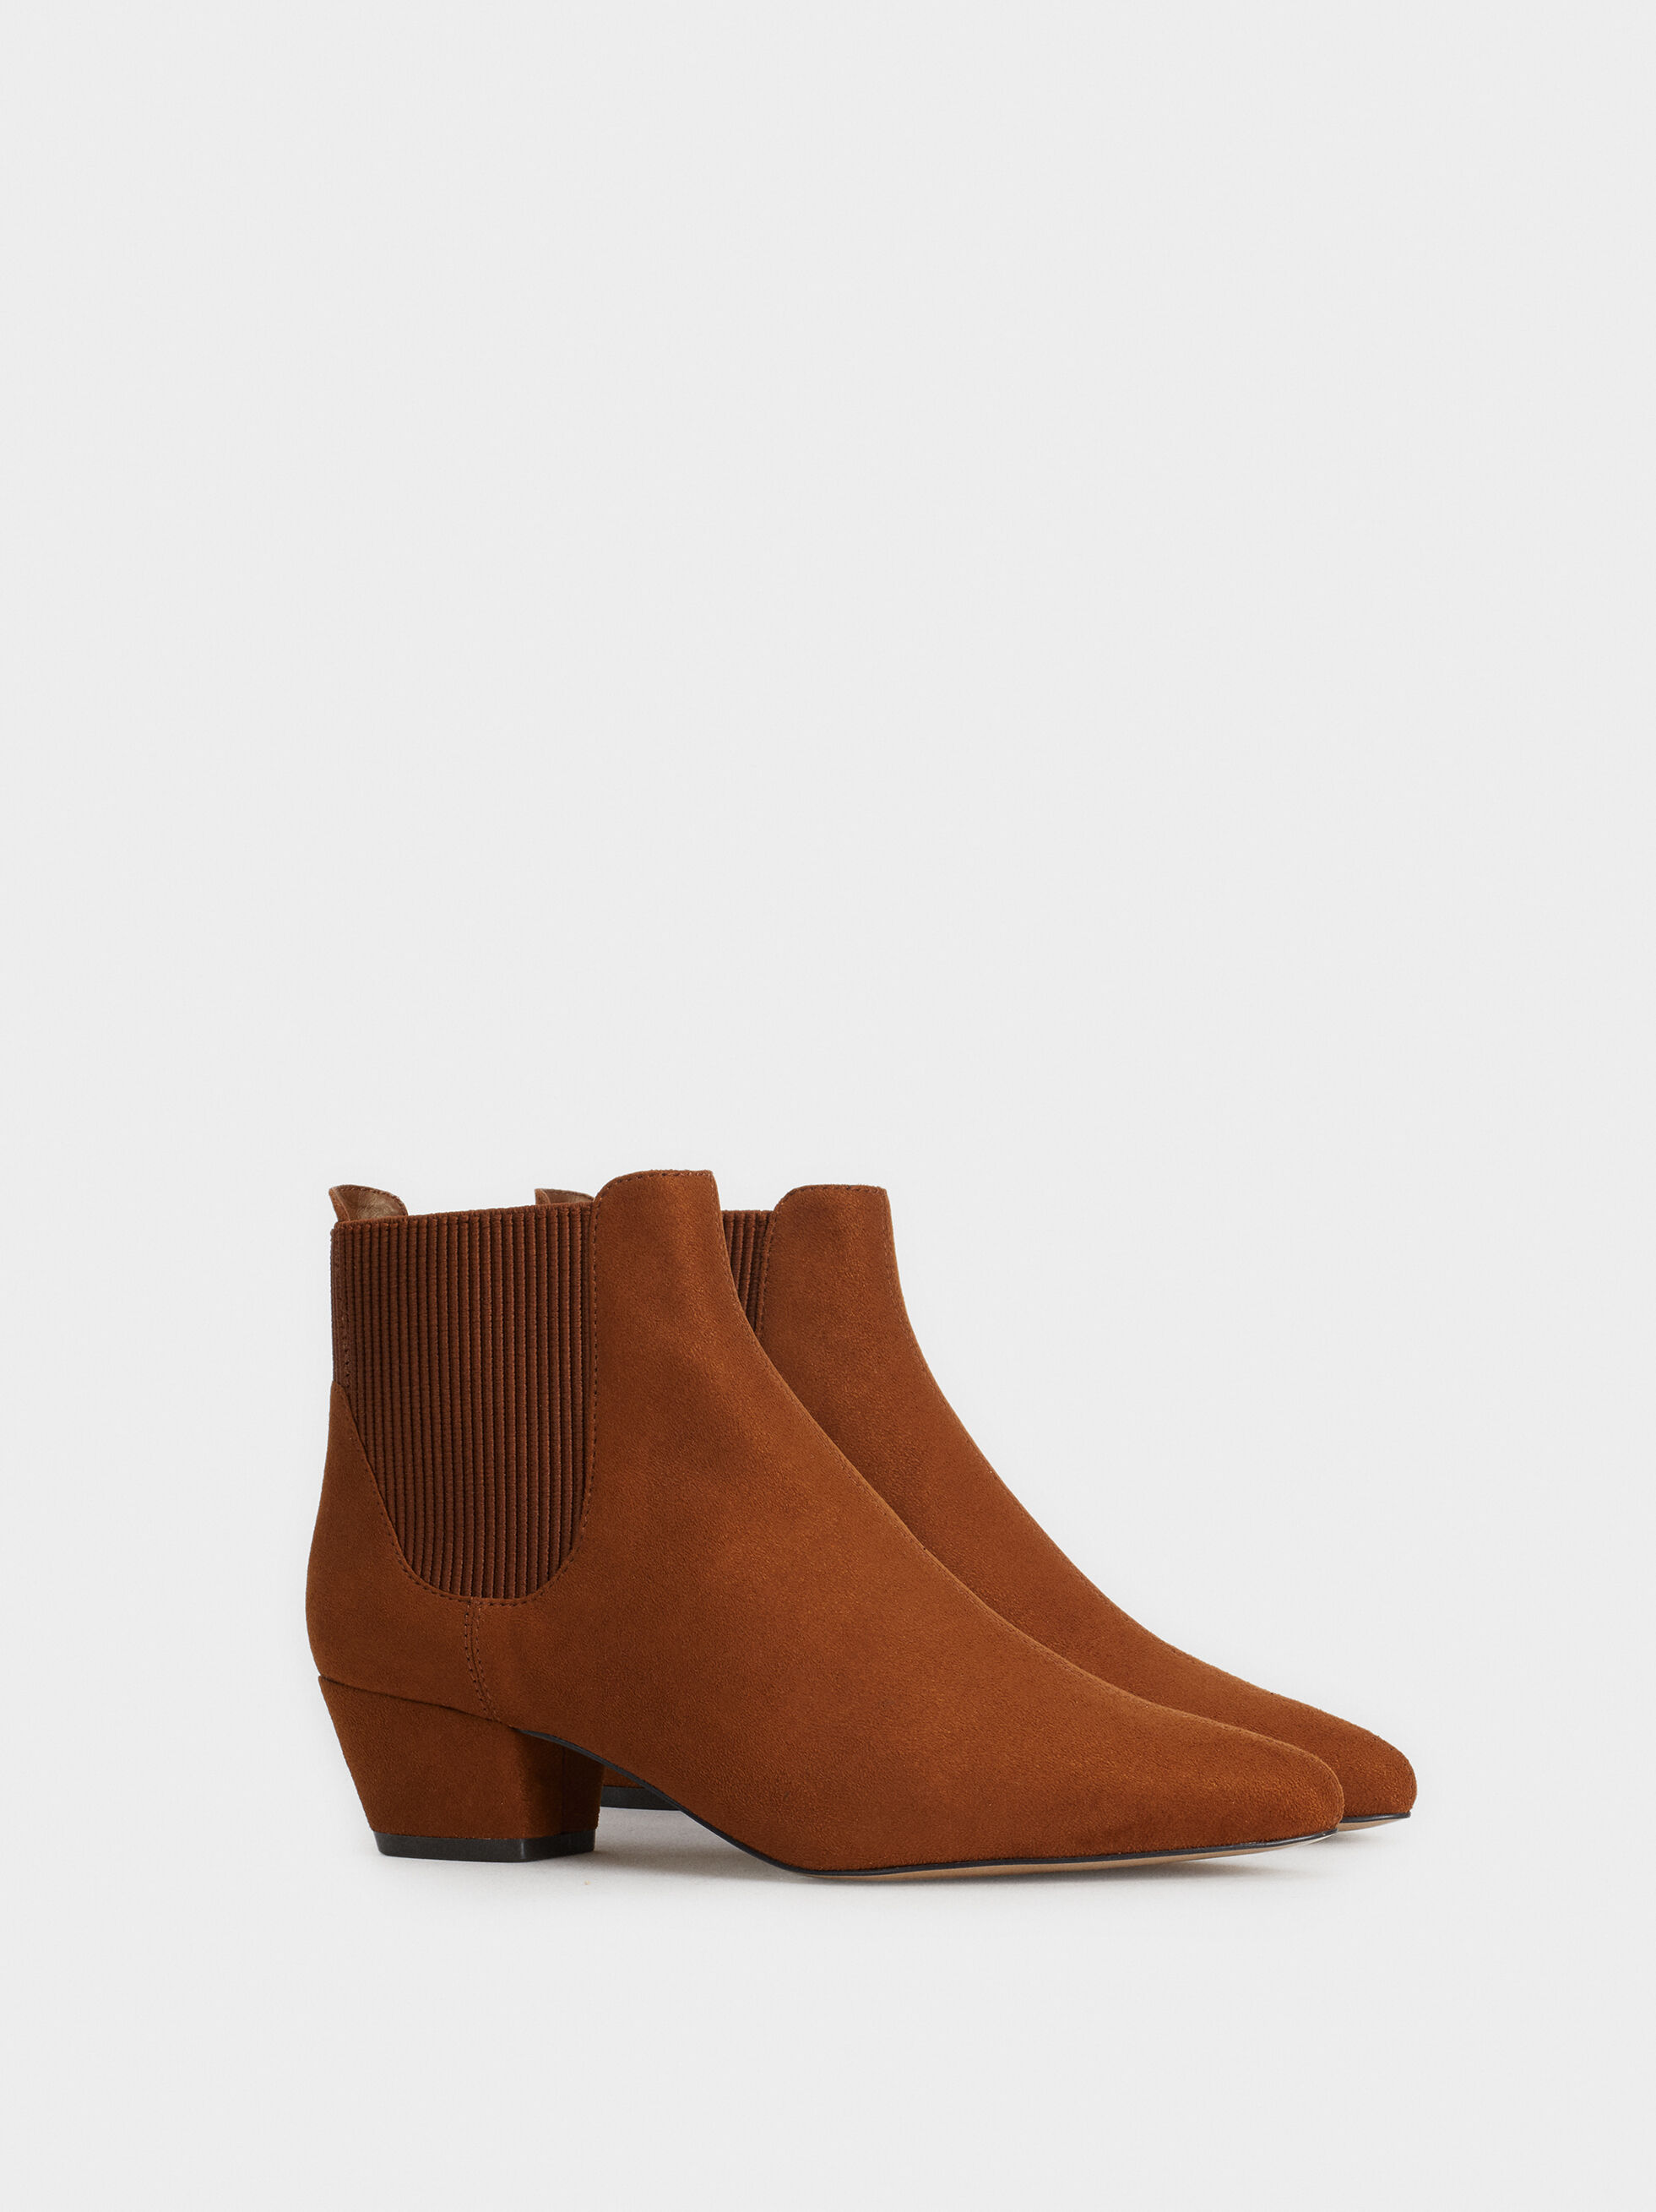 Faux Suede Ankle Boots With Elastic Side Tabs, Camel, hi-res